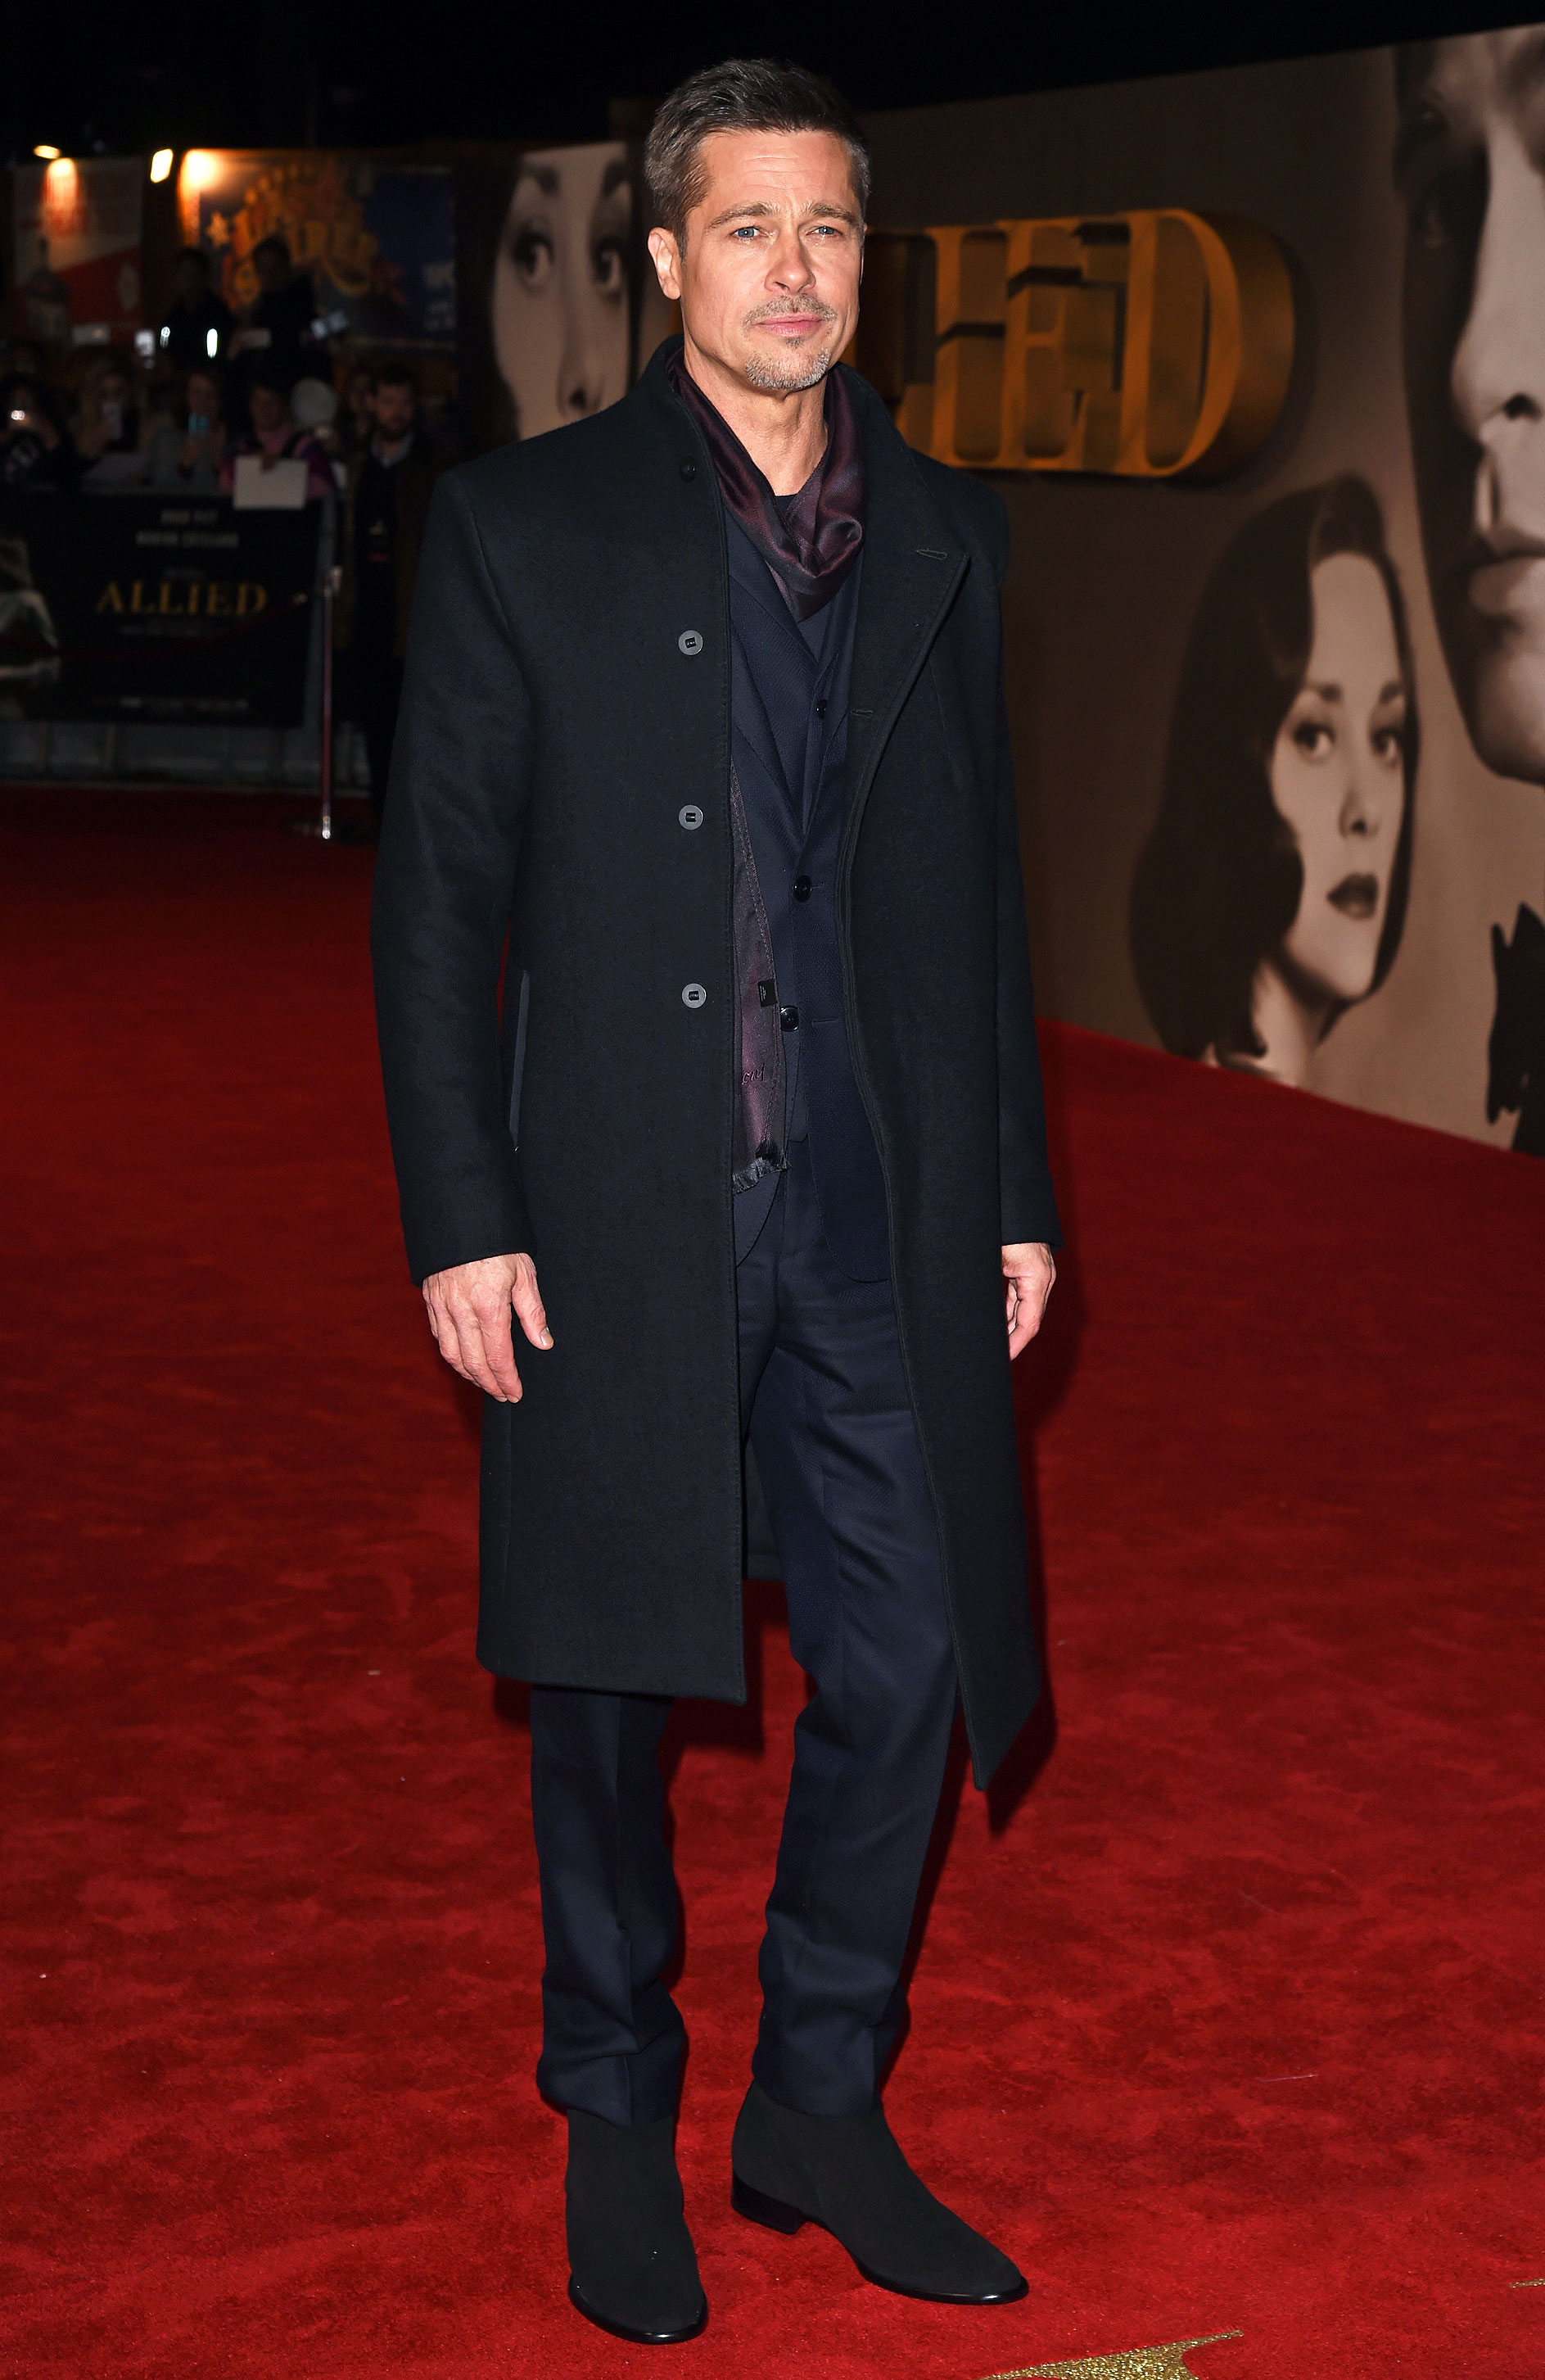 brad pitt - Just a day after Allied 's red carpet premier in Paris, Pitt took a similar approach in his look by opting for another dark-colored suit, scarf and coat for the London premiere.